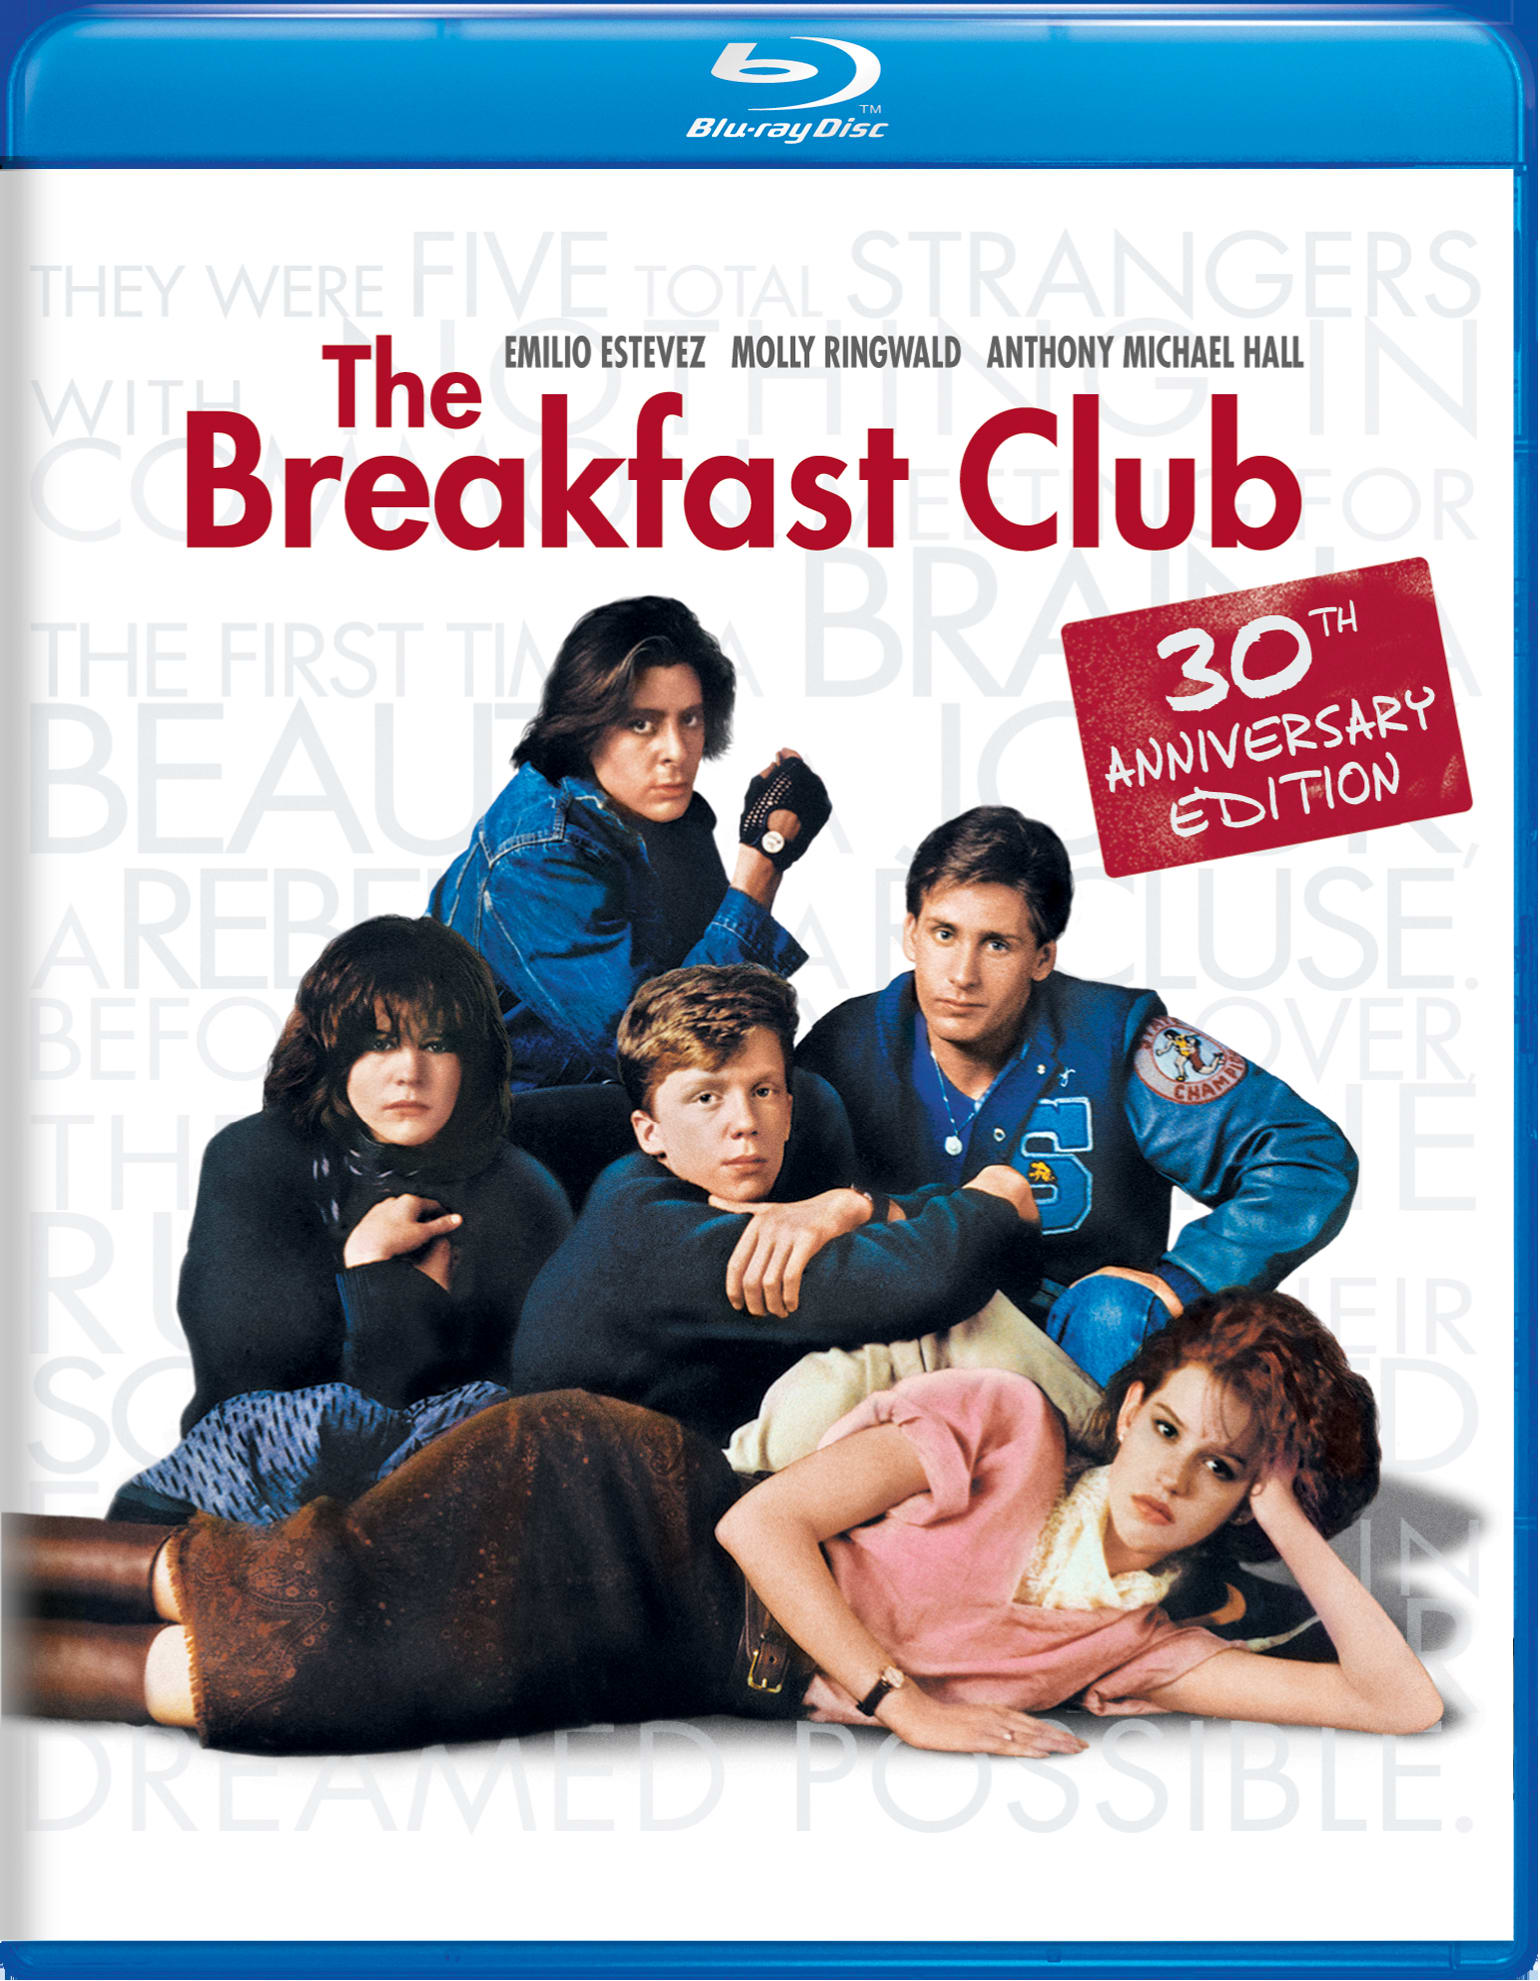 The Breakfast Club (30th Anniversary Edition) [Blu-ray]